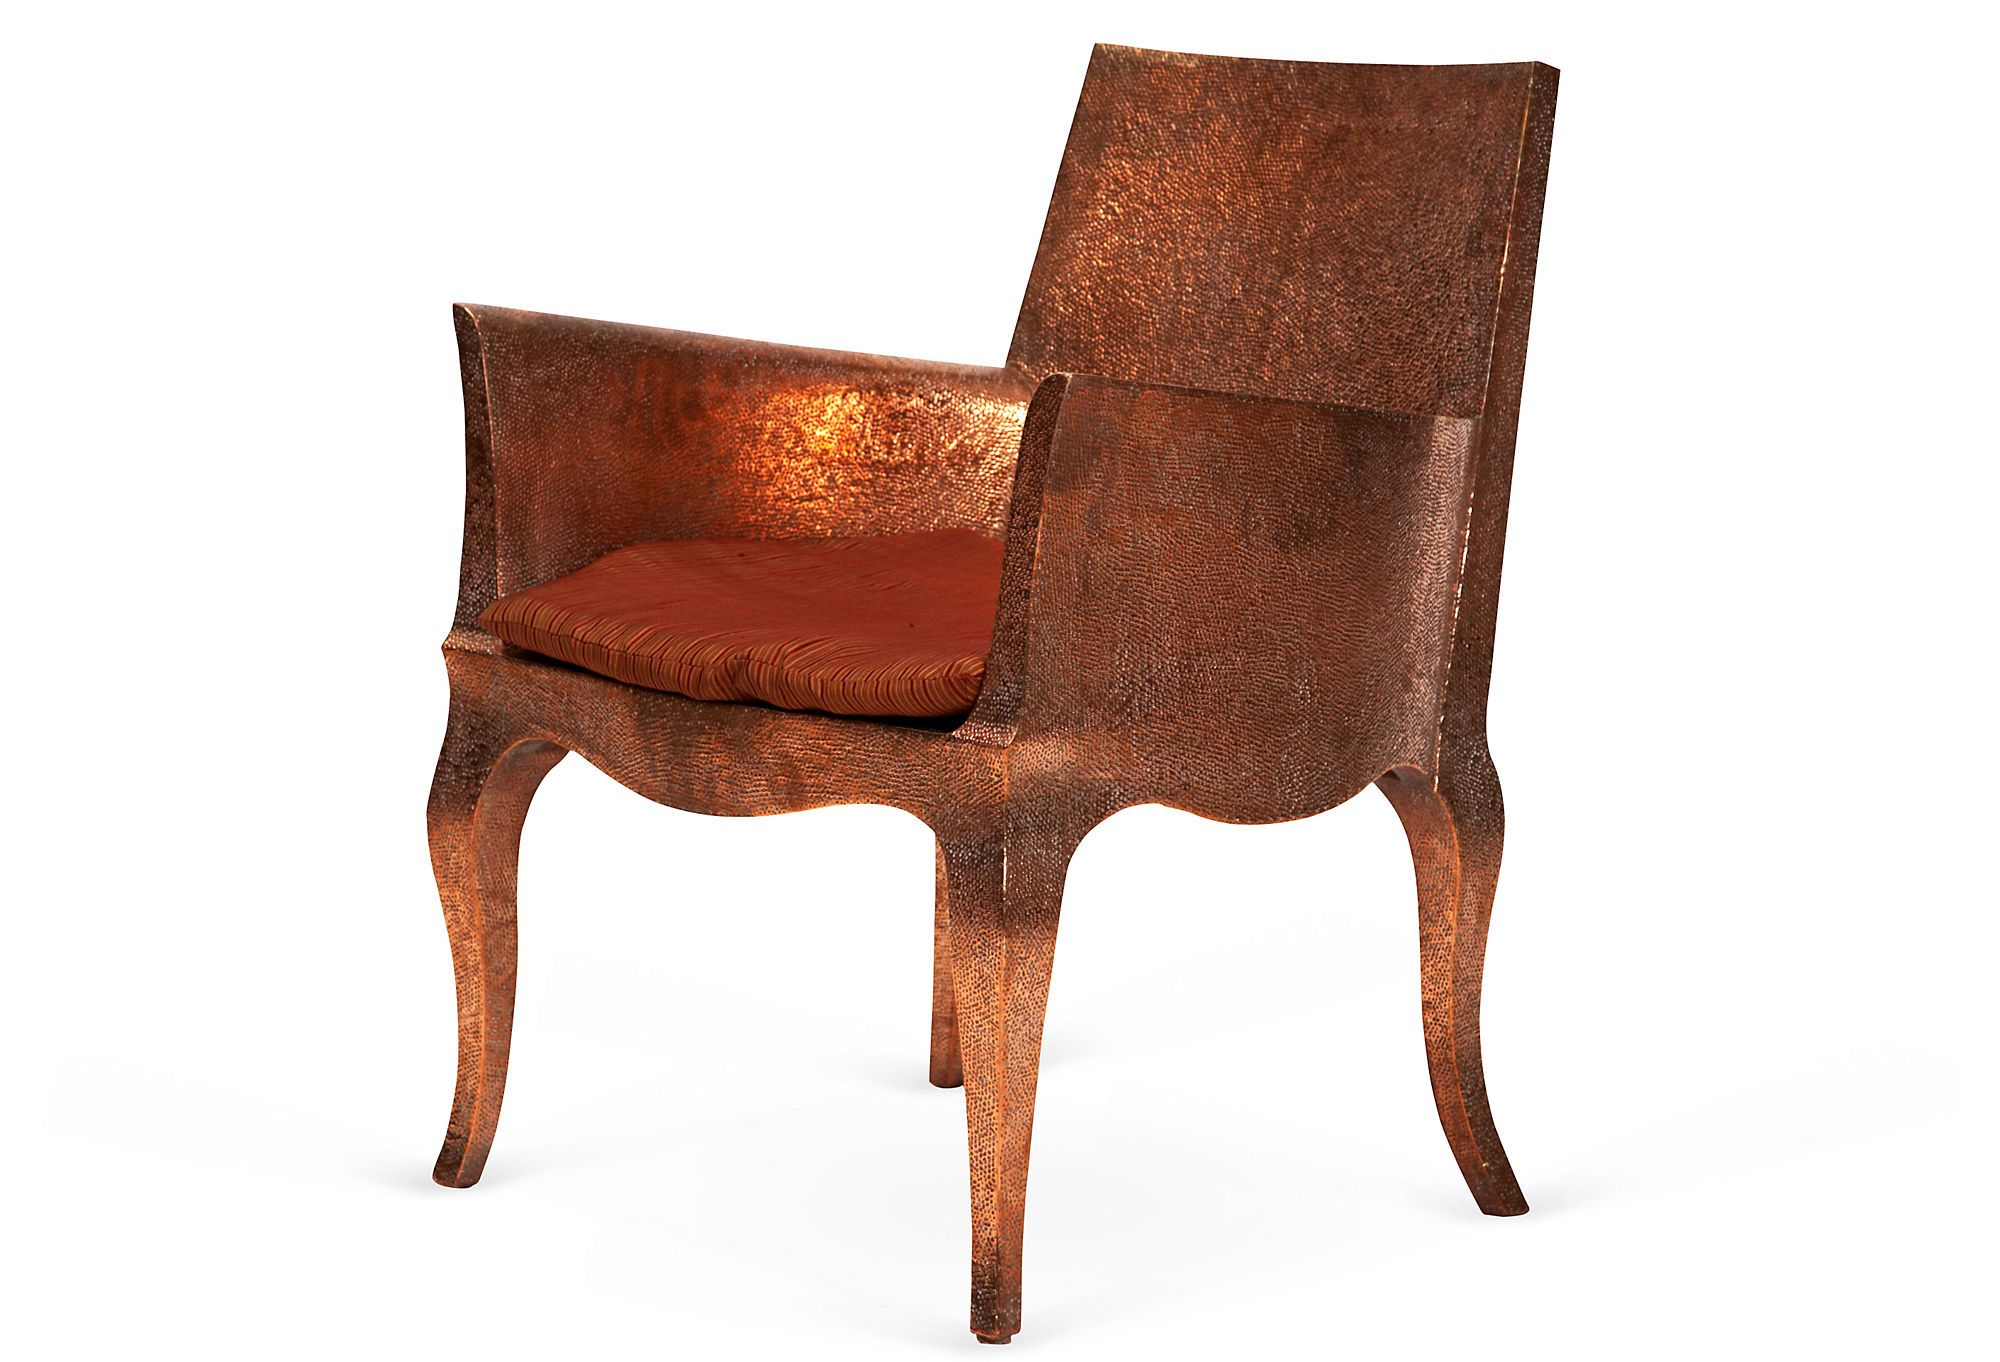 One Kings Lane - Stephanie Odegard - Hammered Copper Club Chairs, Pair